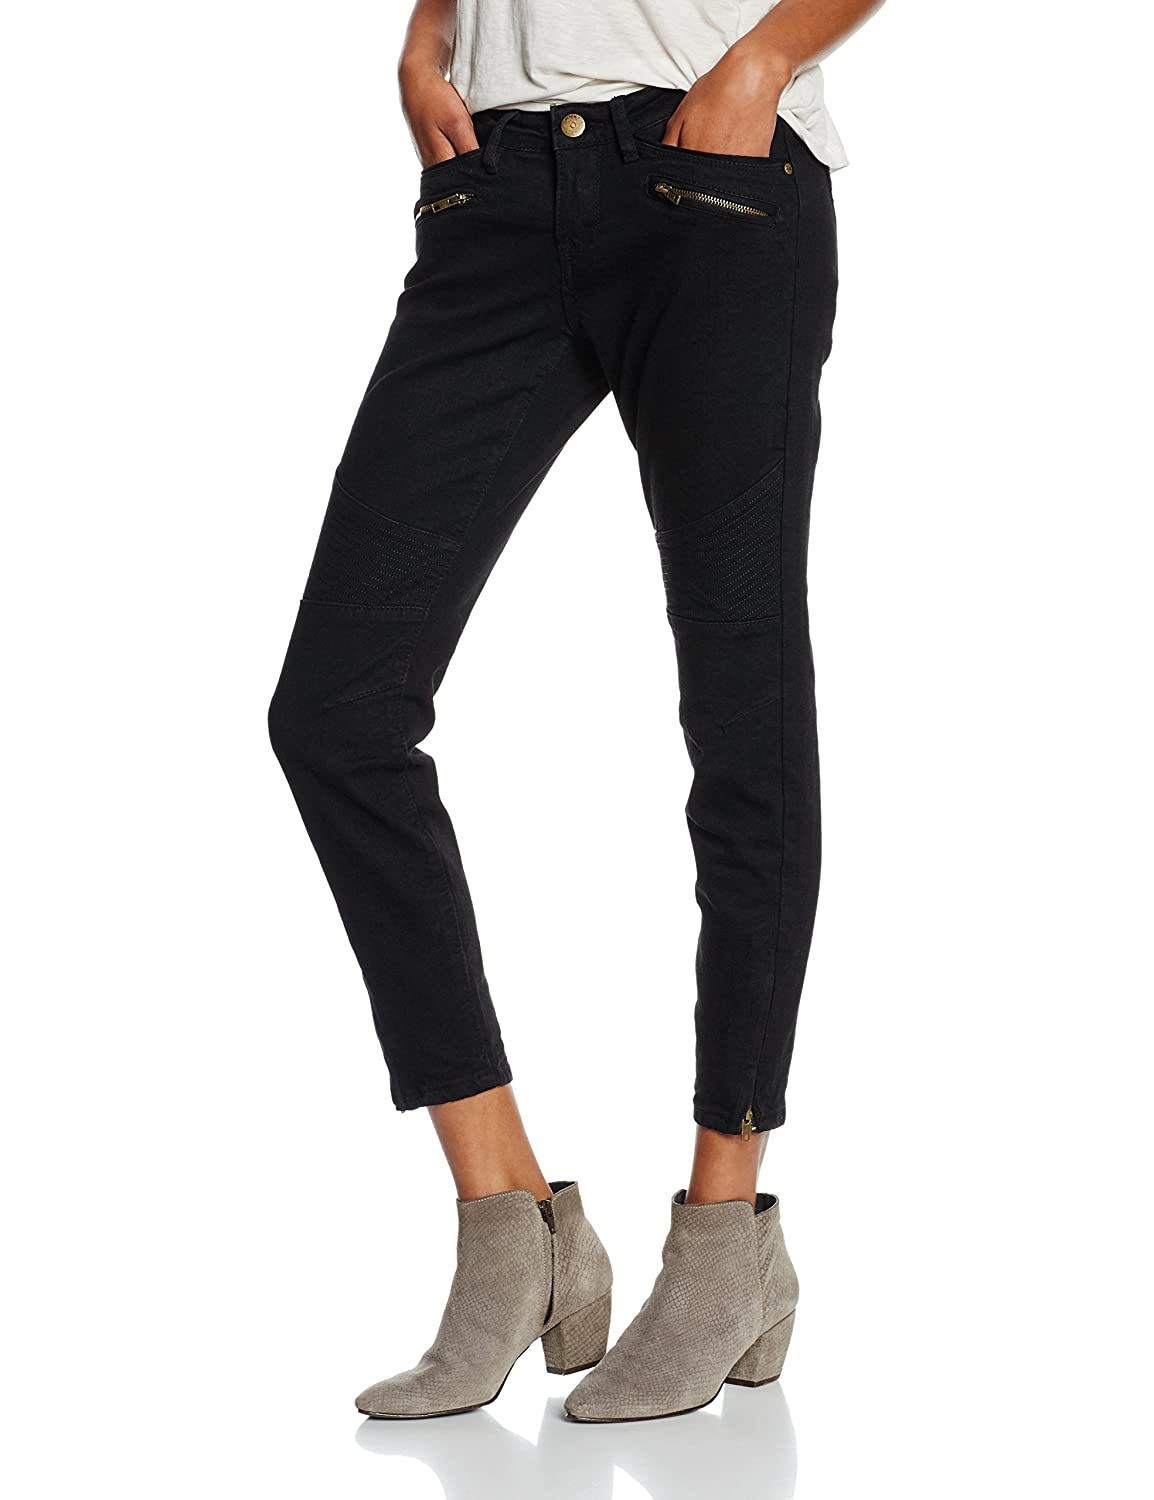 Adosmanos Rock Wreapped Angel cr Jeans Megan co Femme Well OqYAfOw